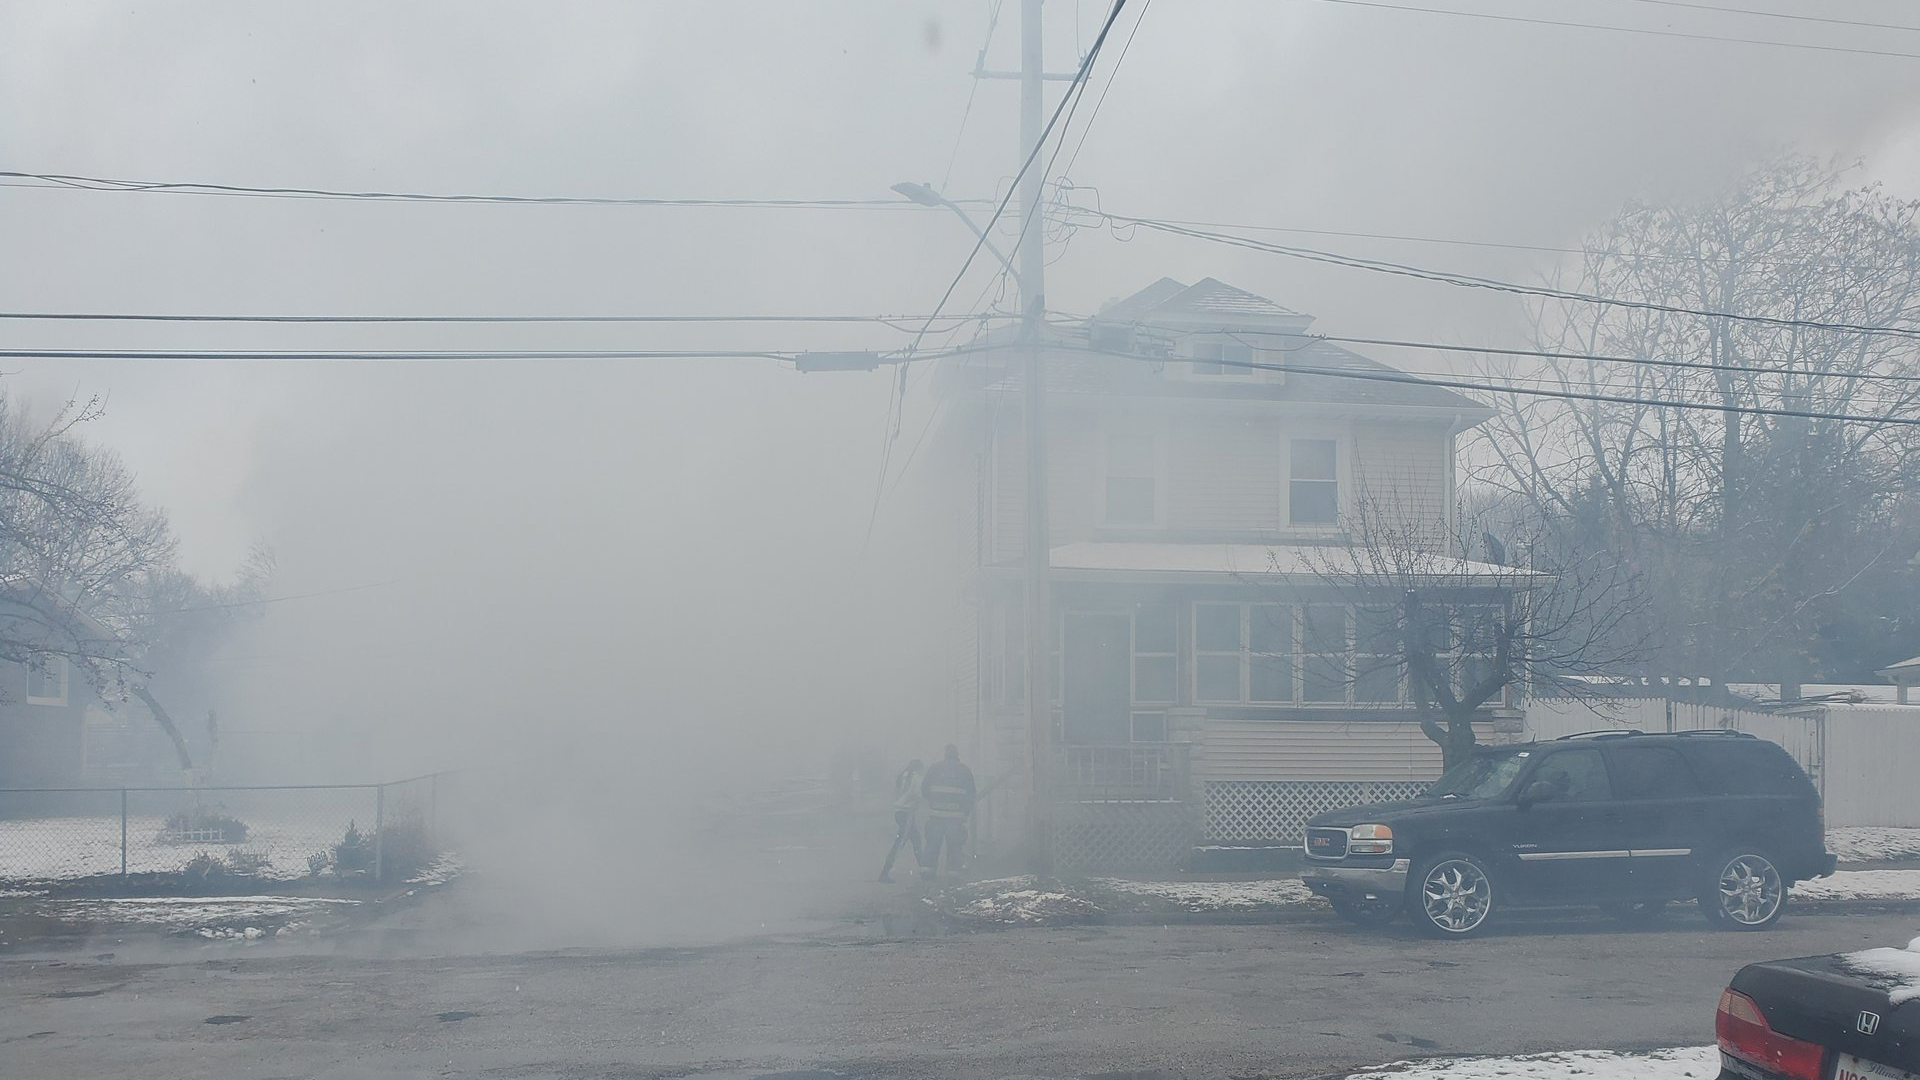 Crews battle garage fire in Moline on March 14 (photo: Ryan Risky, OurQuadCities.com)